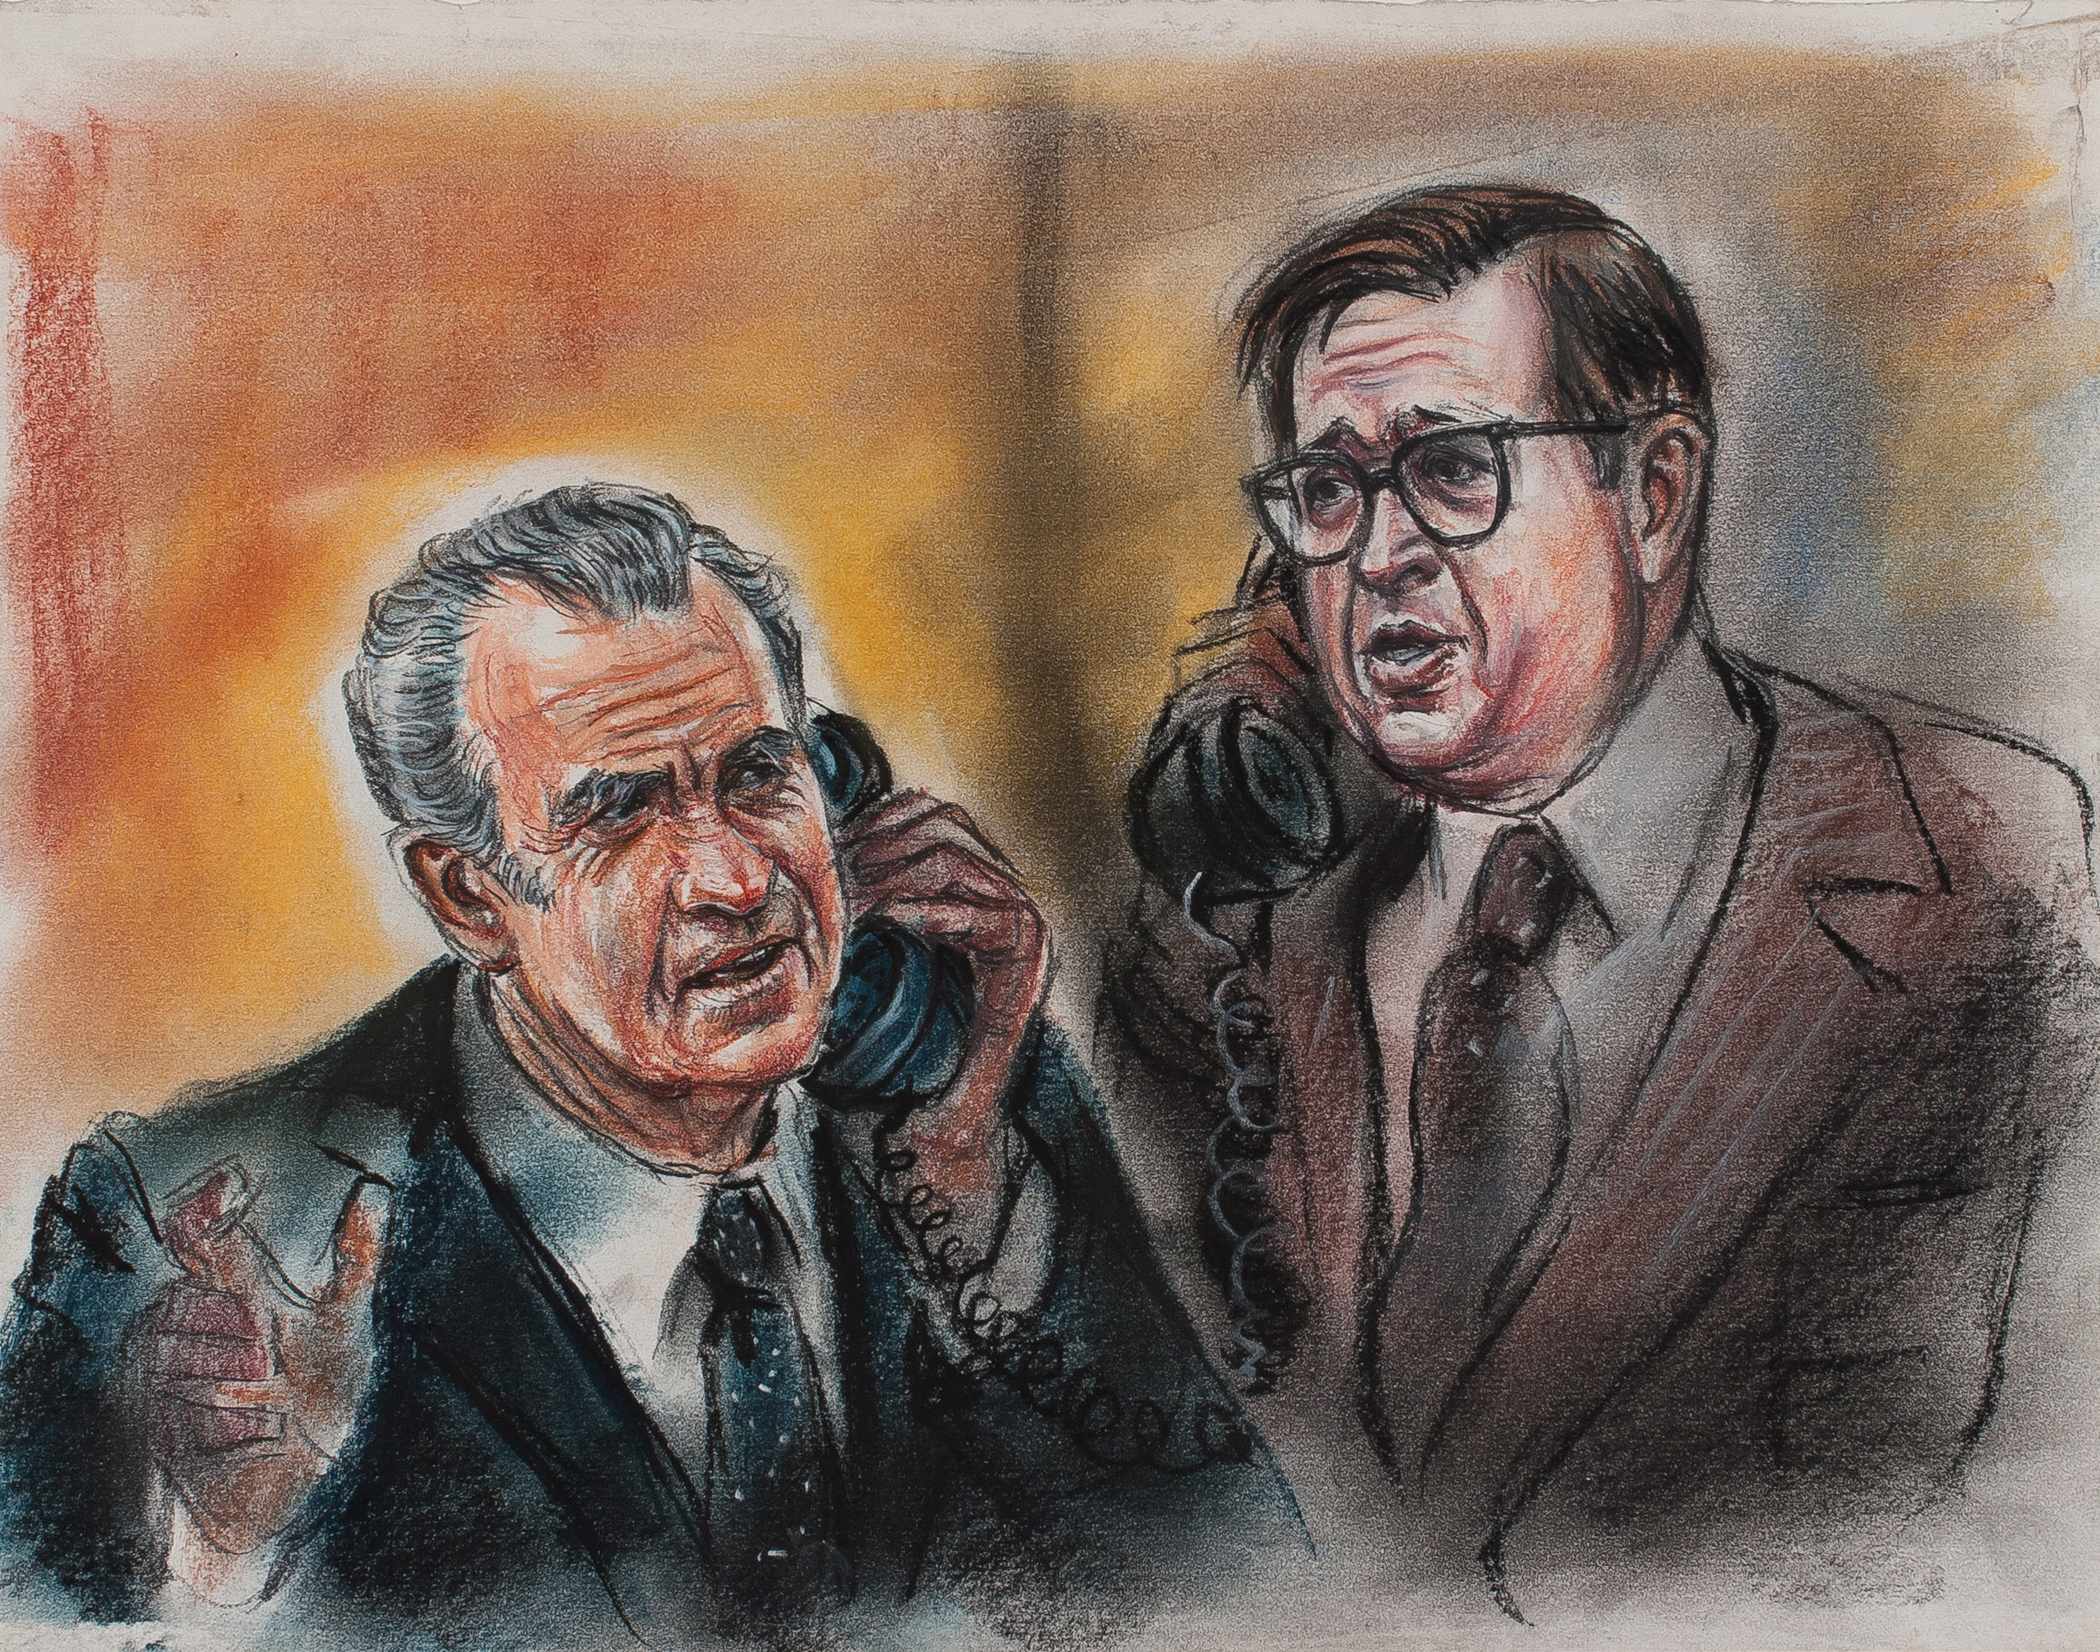 3. Freda Reiter, Nixon, Colson on Phone, Recreation of 1973 conversation, drawn to accompany television playback of Nixon White House tapes during the 1974 trial, Courtesy online Gallery 98